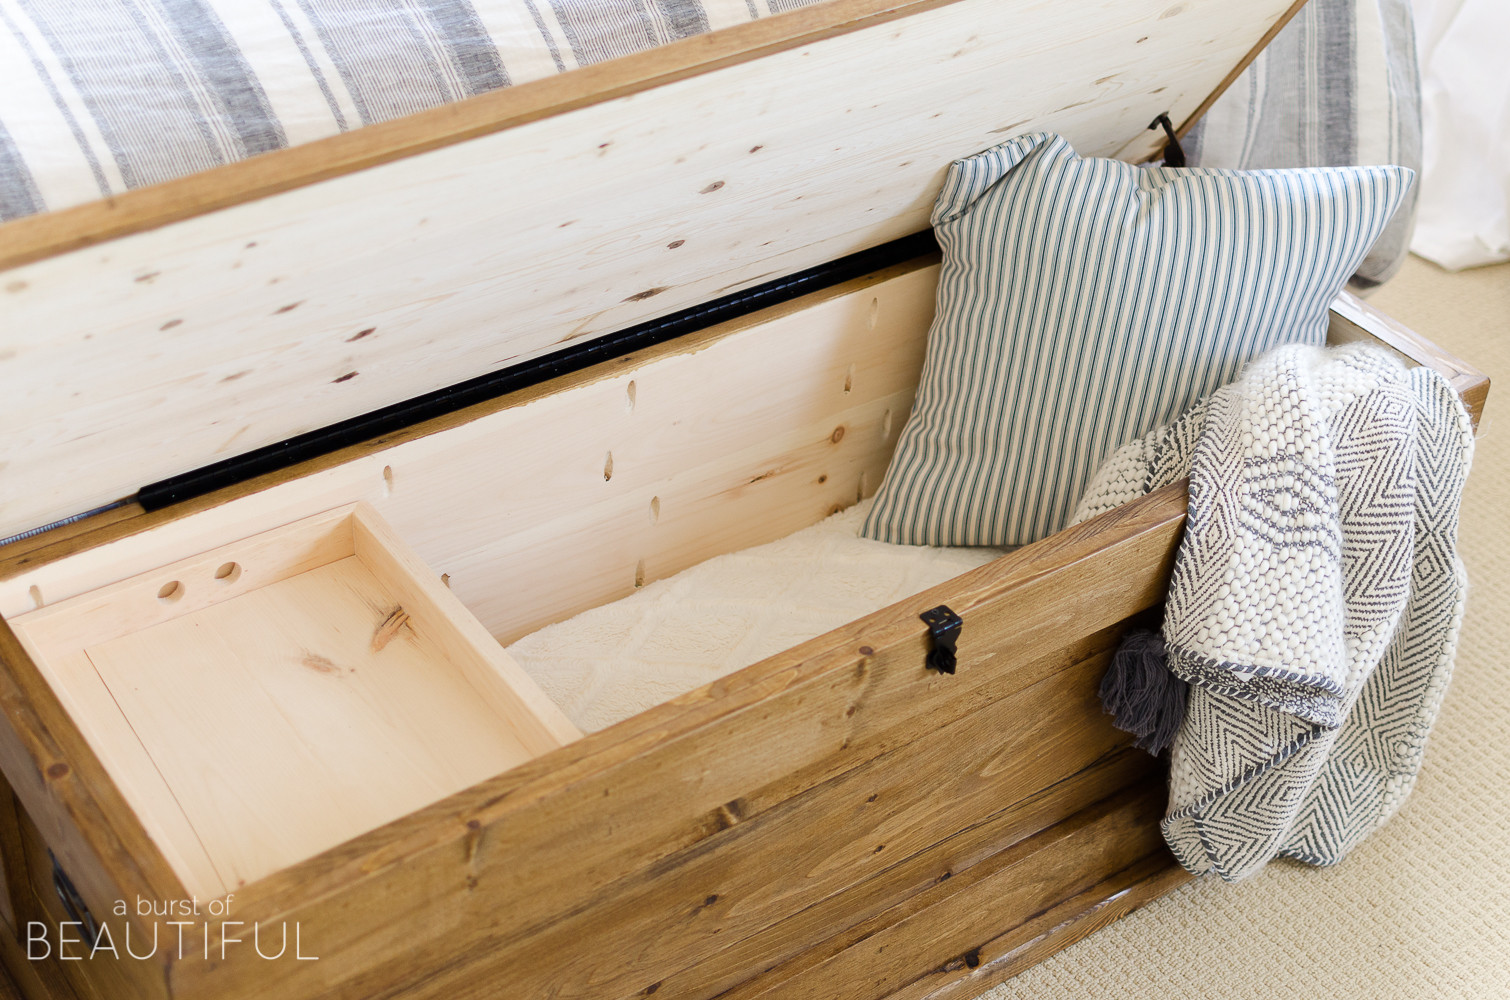 Best ideas about DIY Storage Chest . Save or Pin DIY Blanket Storage Chest A Burst of Beautiful Now.